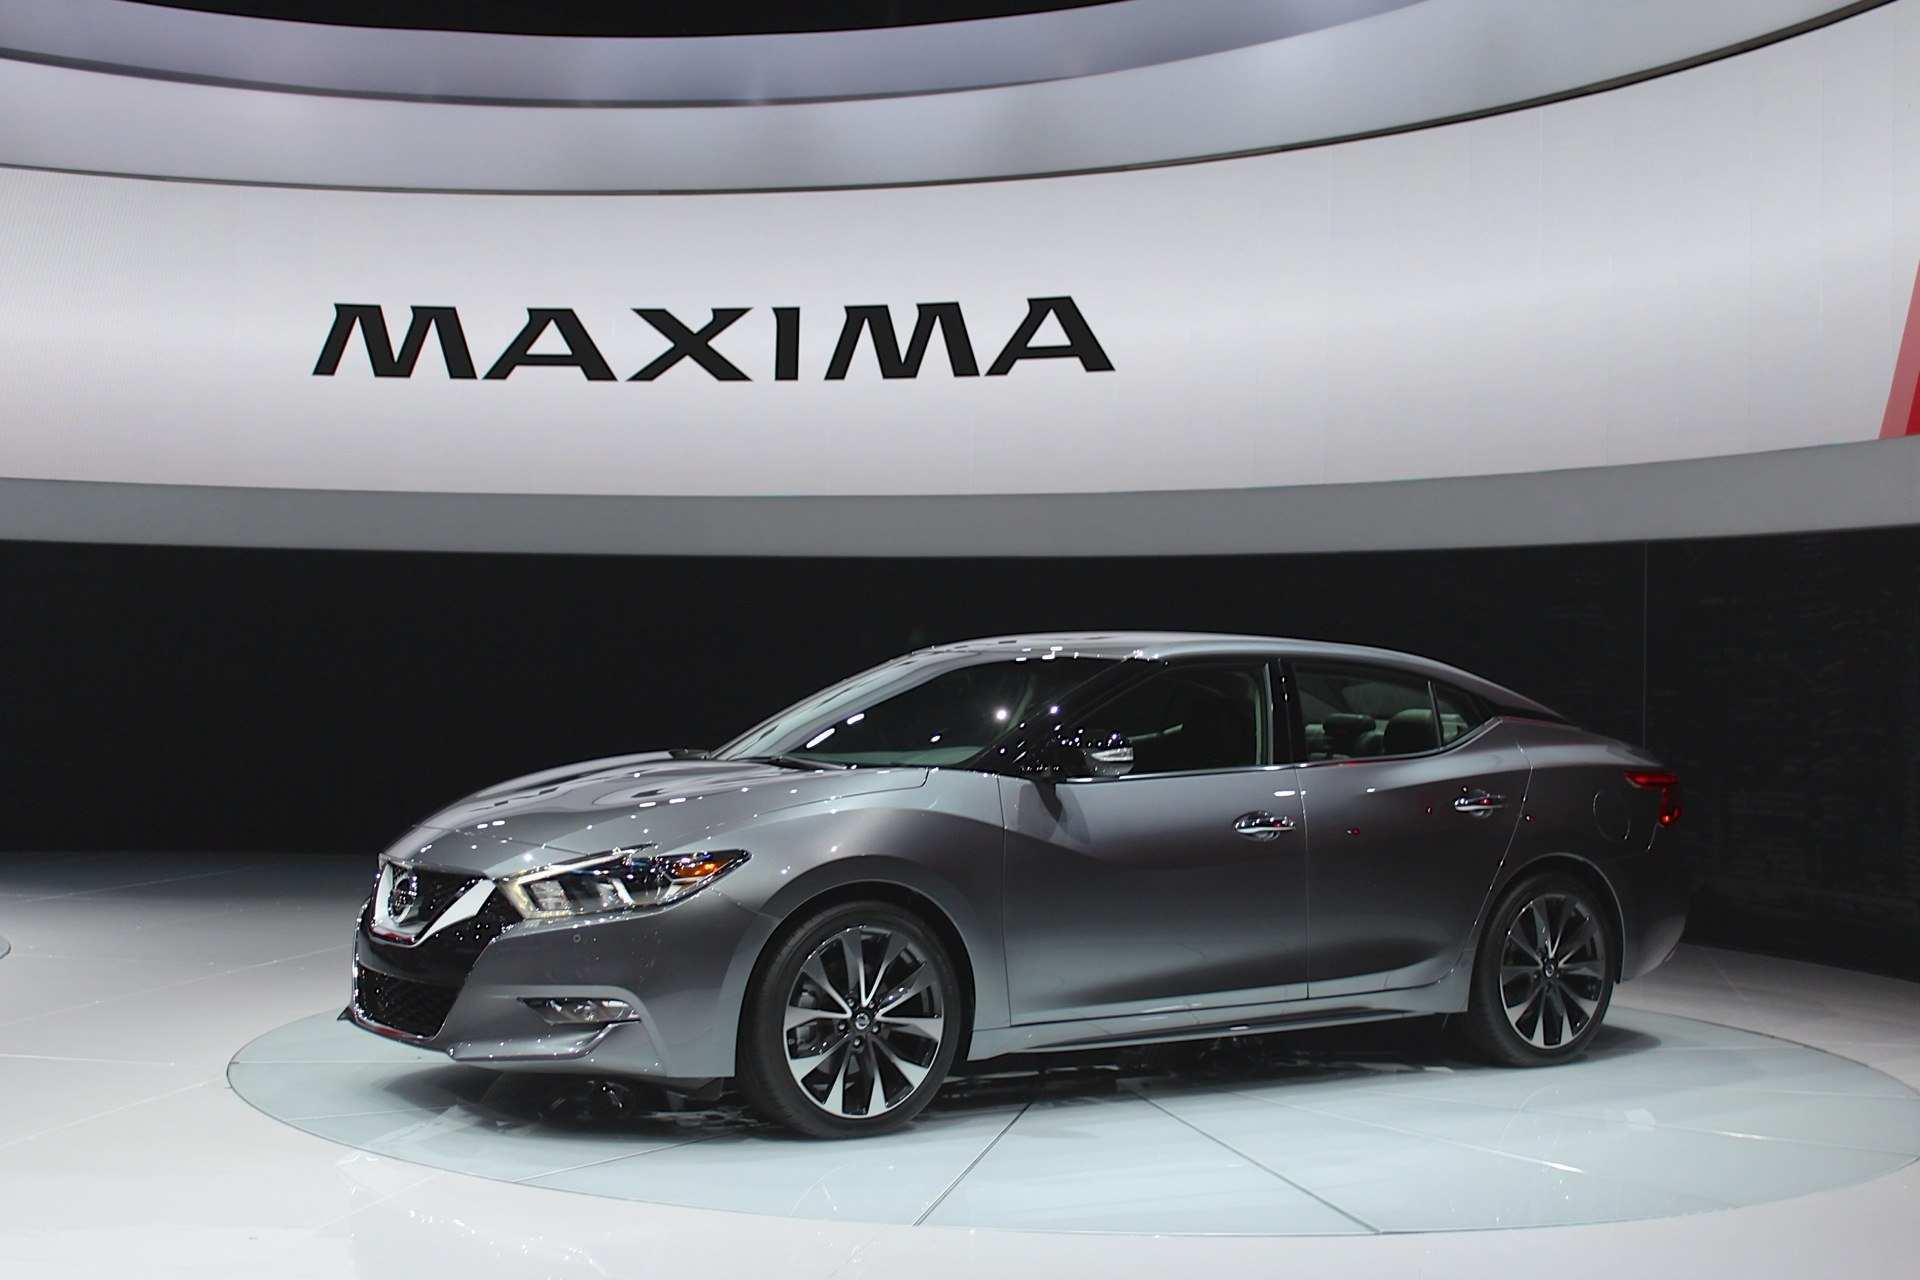 76 Best Nissan Maxima 2020 Awd Review